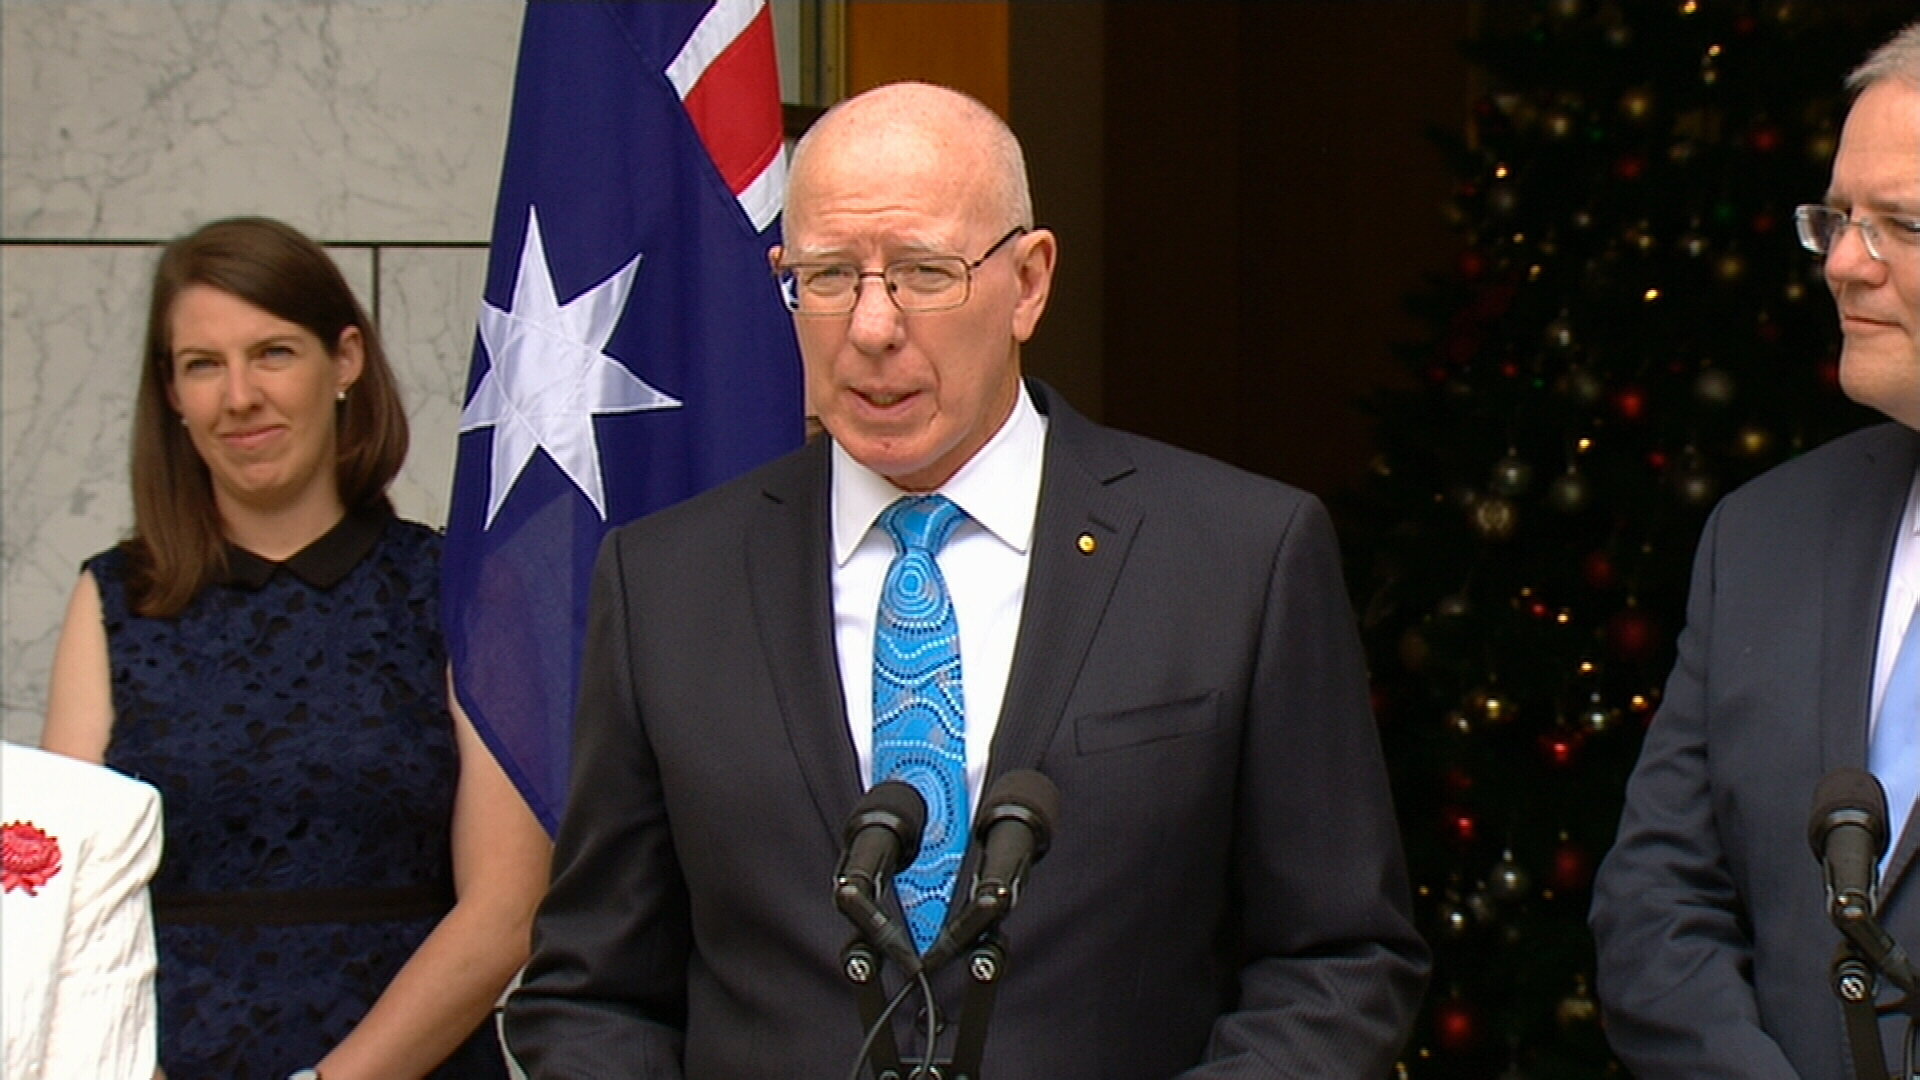 Hurley announced as next Governor-General